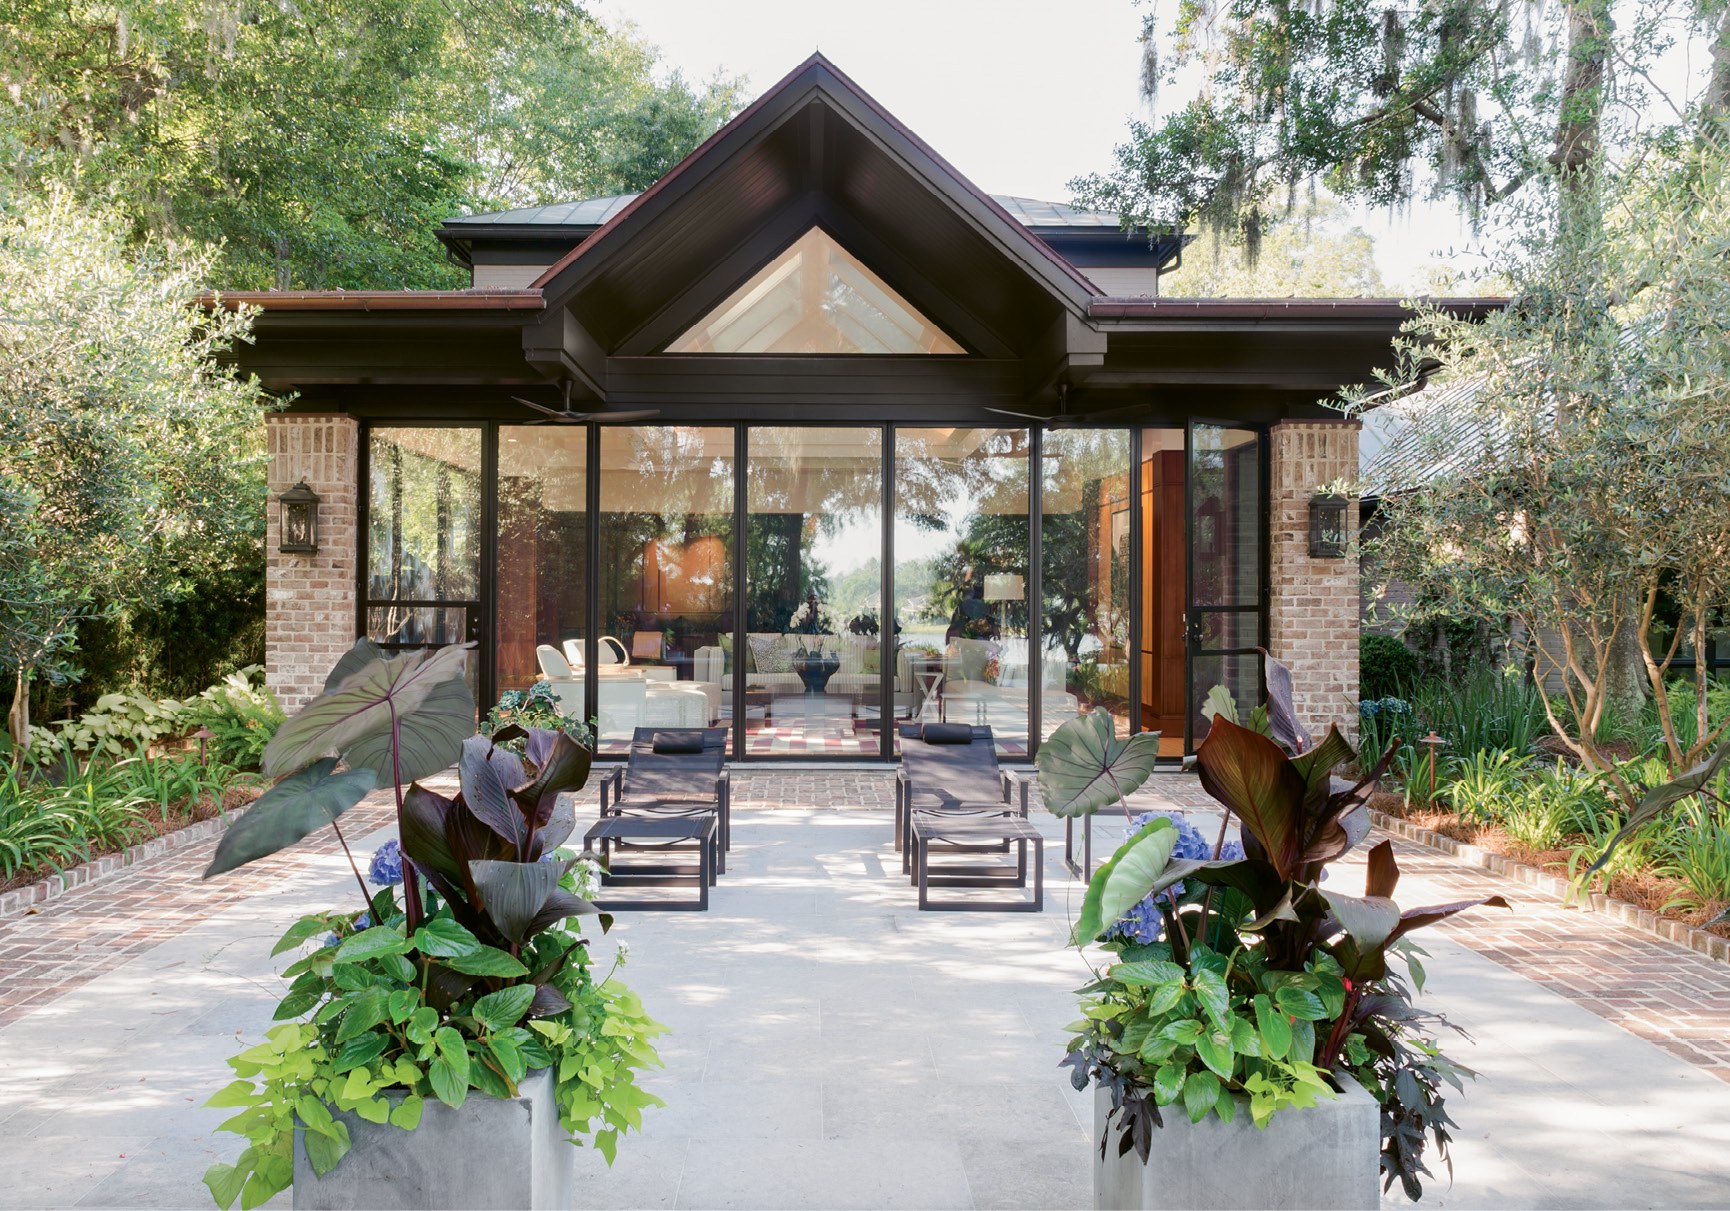 Improved Outlook: With wall-to-wall windows revealing an Intracoastal panorama, the new addition transforms what was a screened porch and dark den into an outdoors-oriented living space.